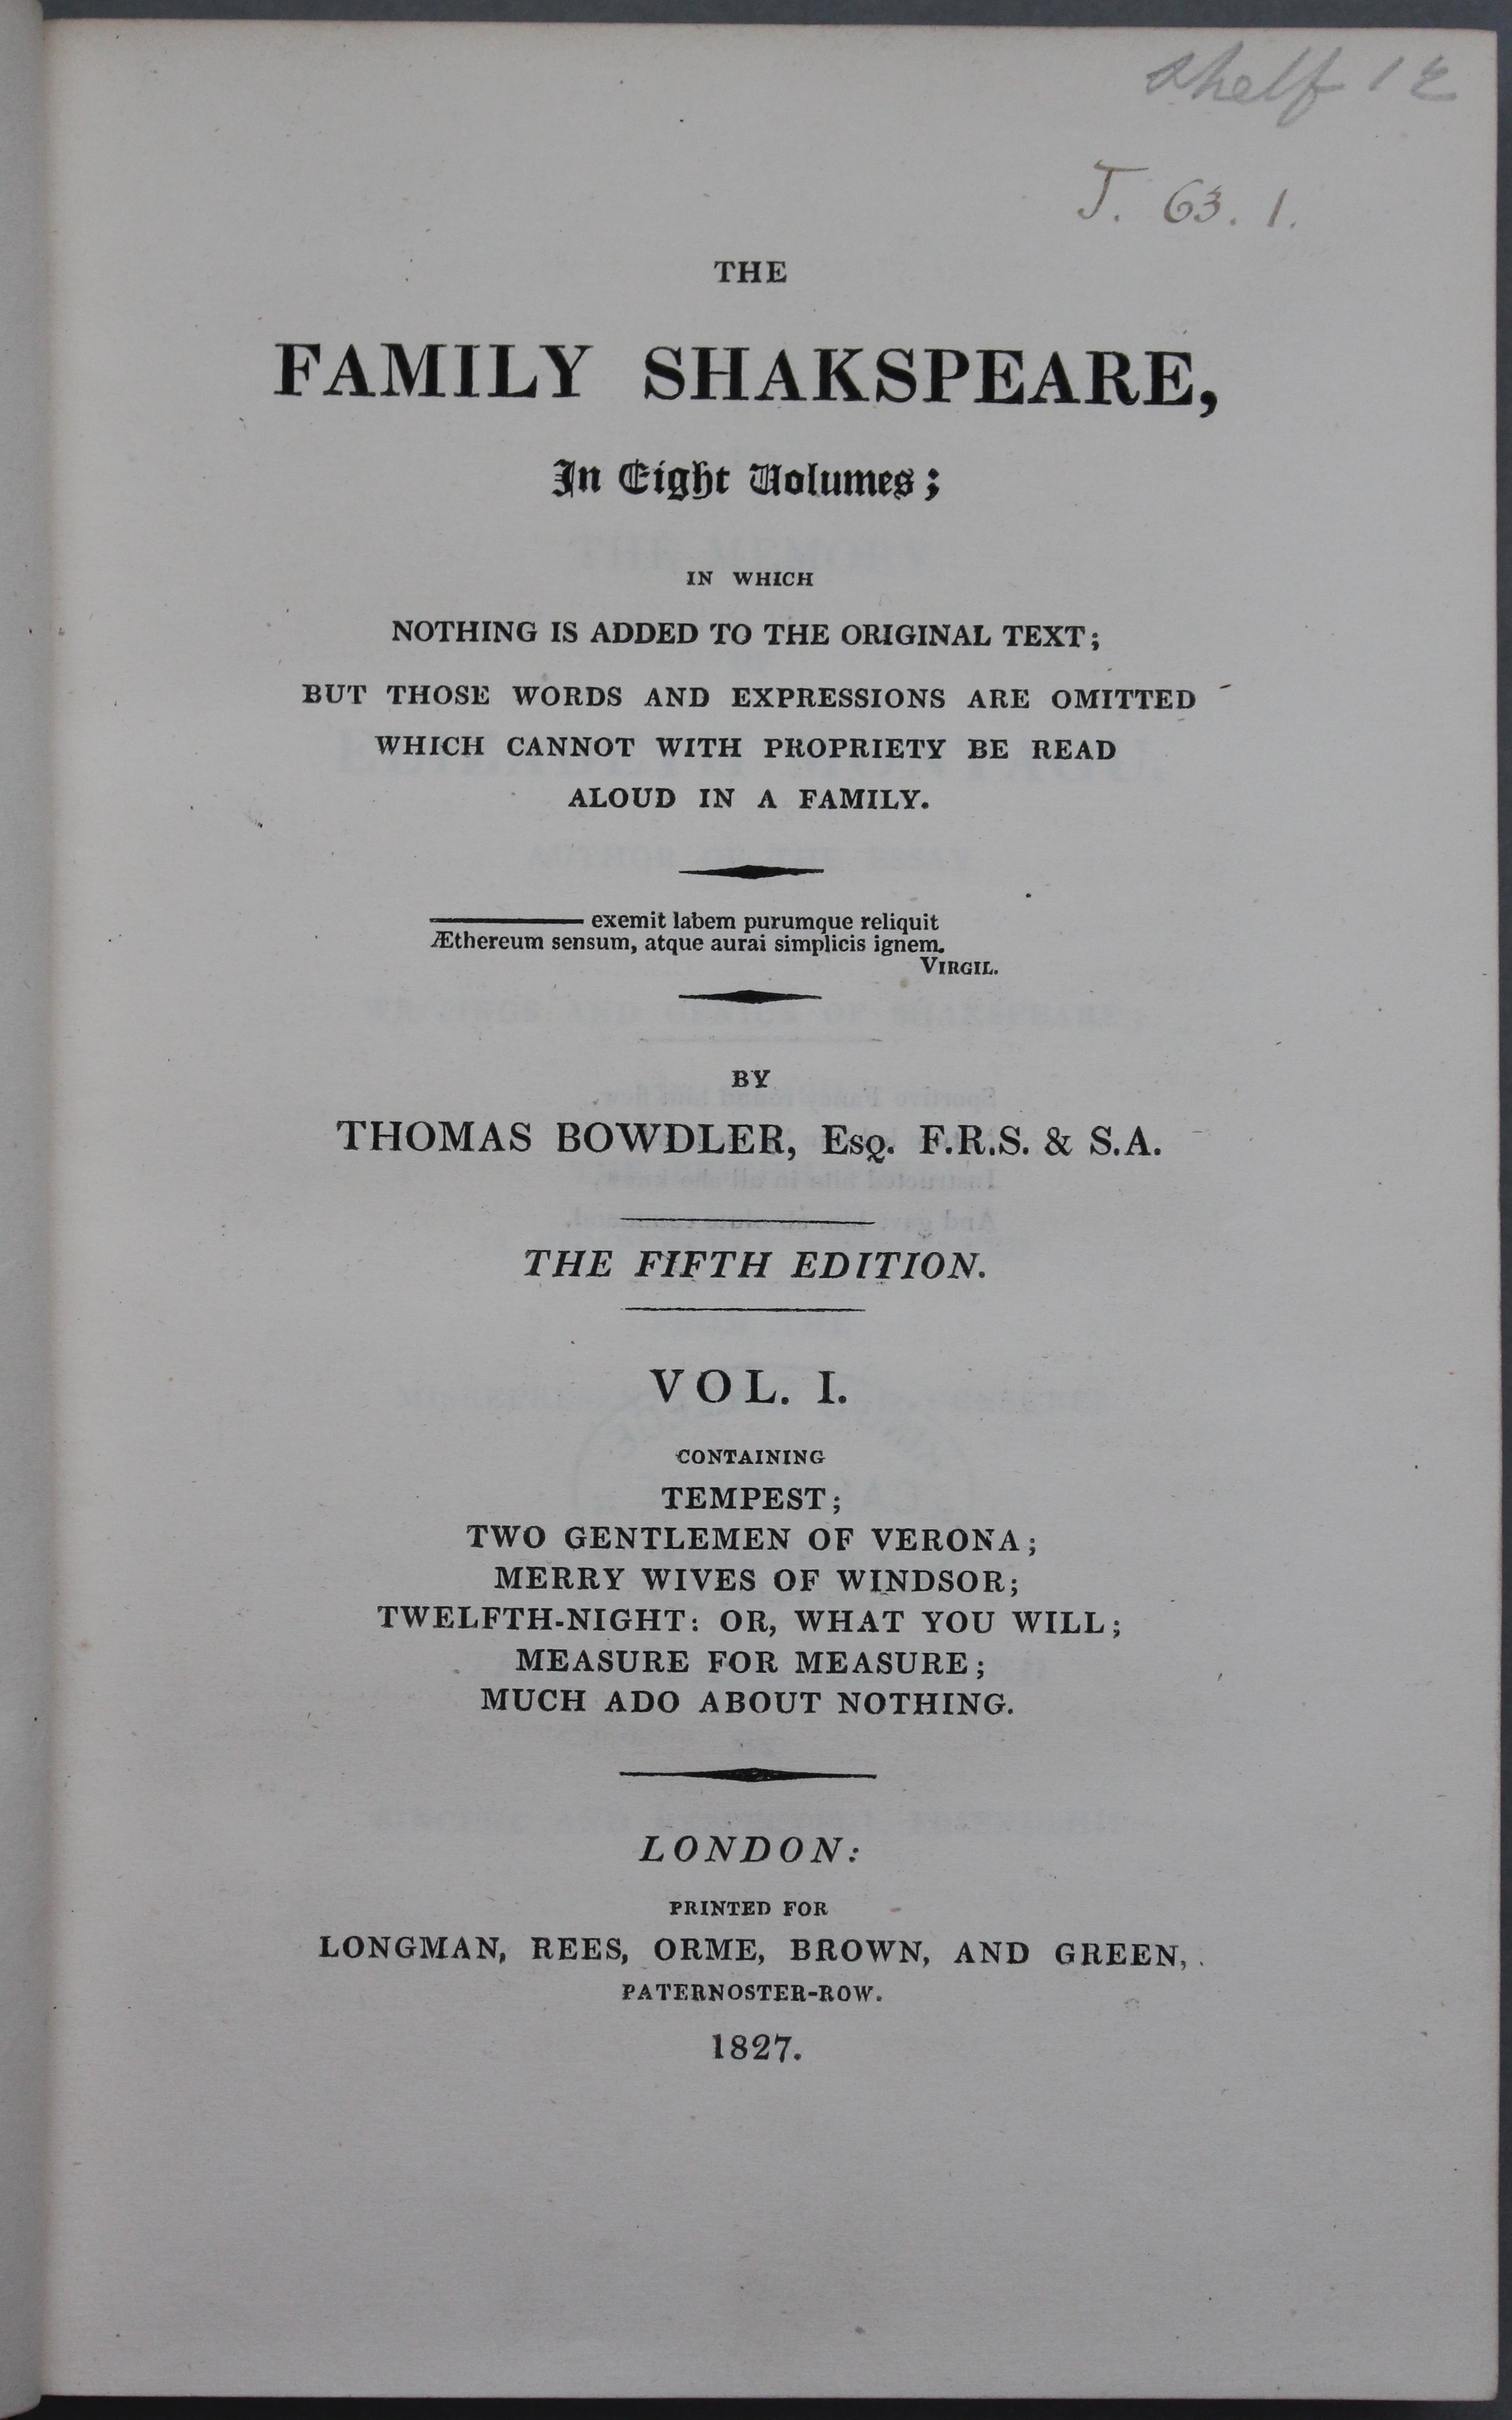 Title page of The Family Shakespeare, 5th edition, 1827 (Thackeray.J.63.1)